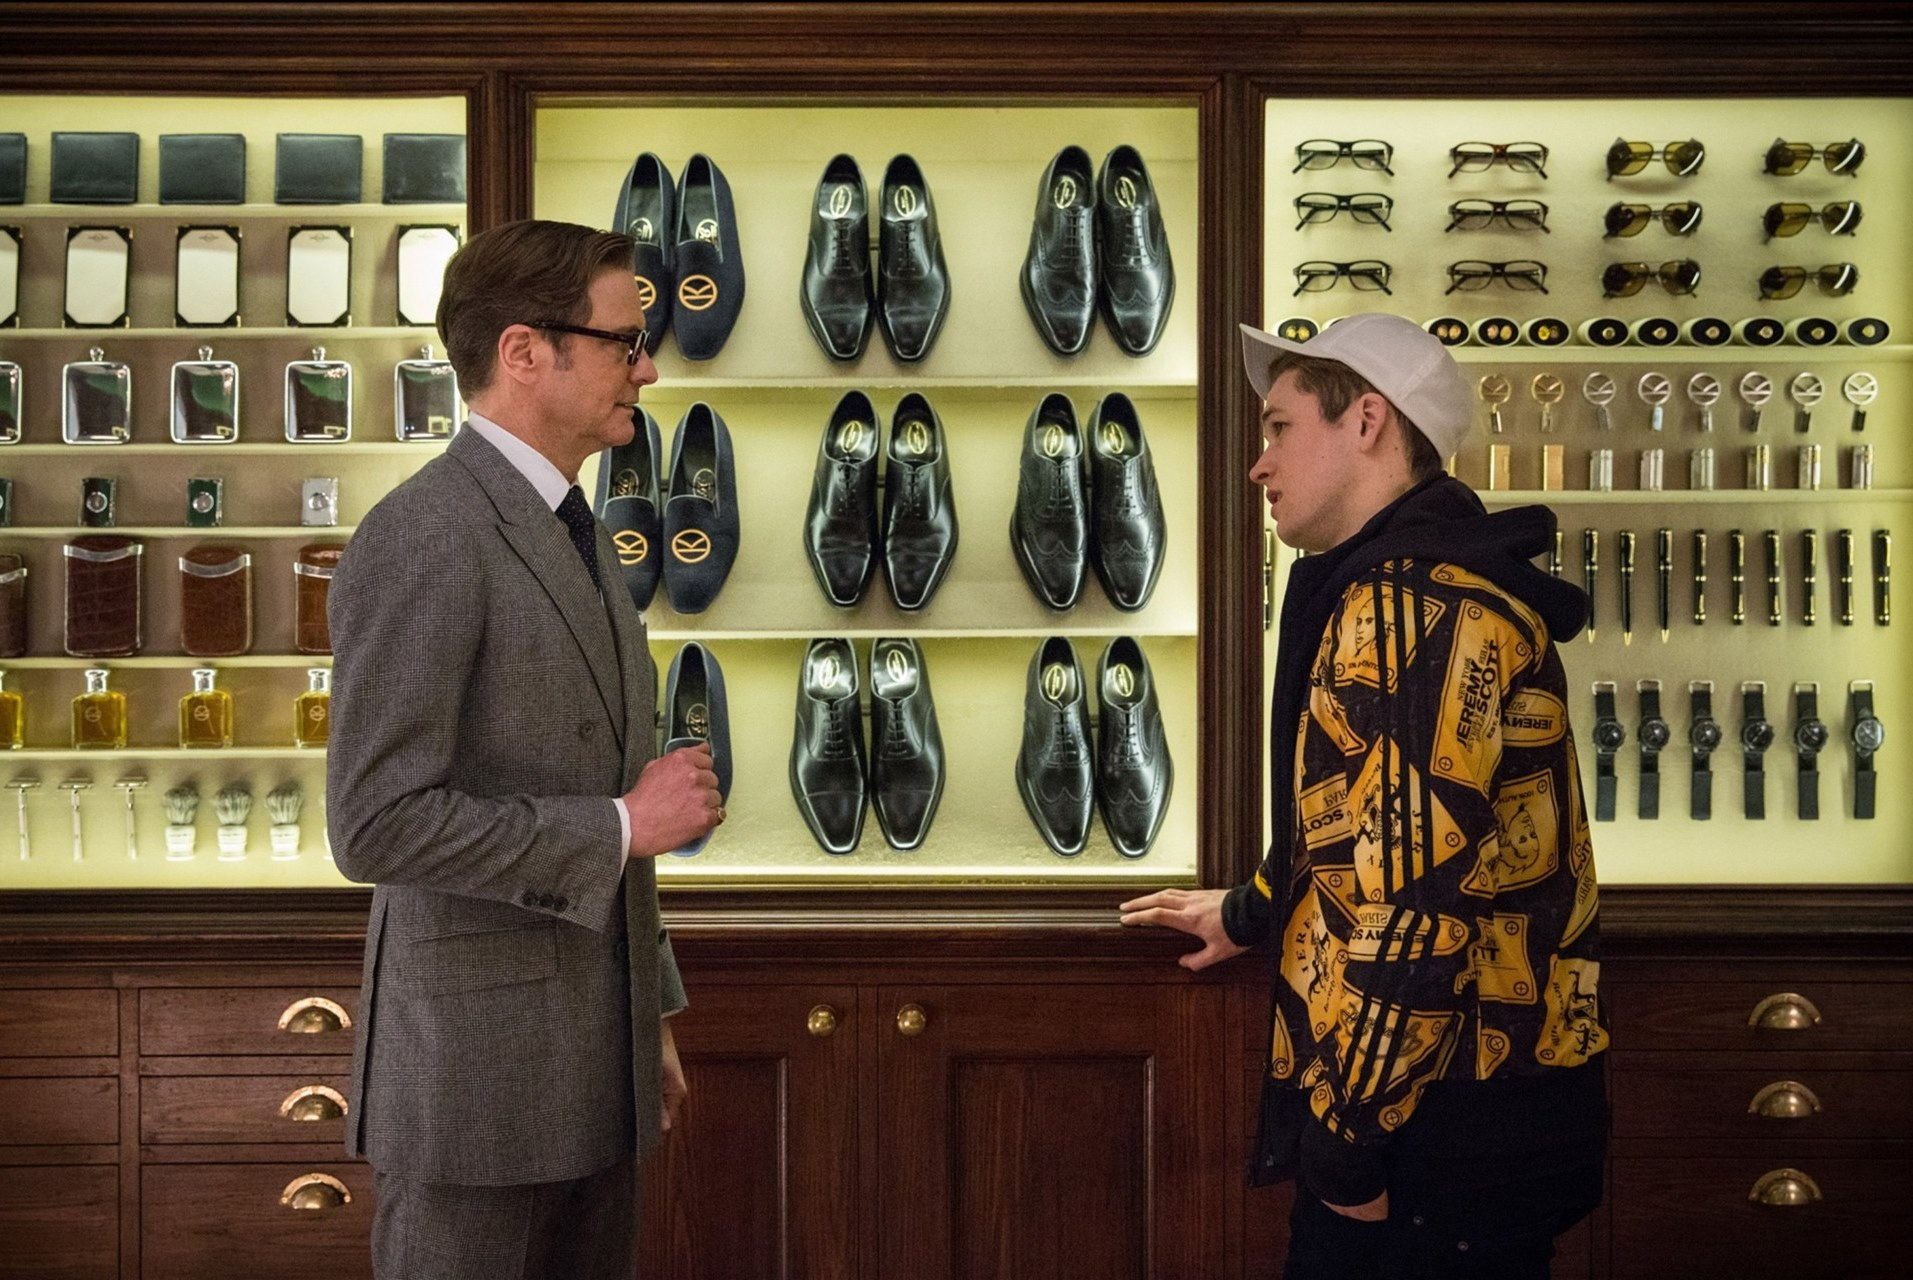 (l to r) Harry Hart (Colin Firth) introduces Eggsy (Taron Egerton) to the Kingsmen in Kingsman: The Secret Service (2015)